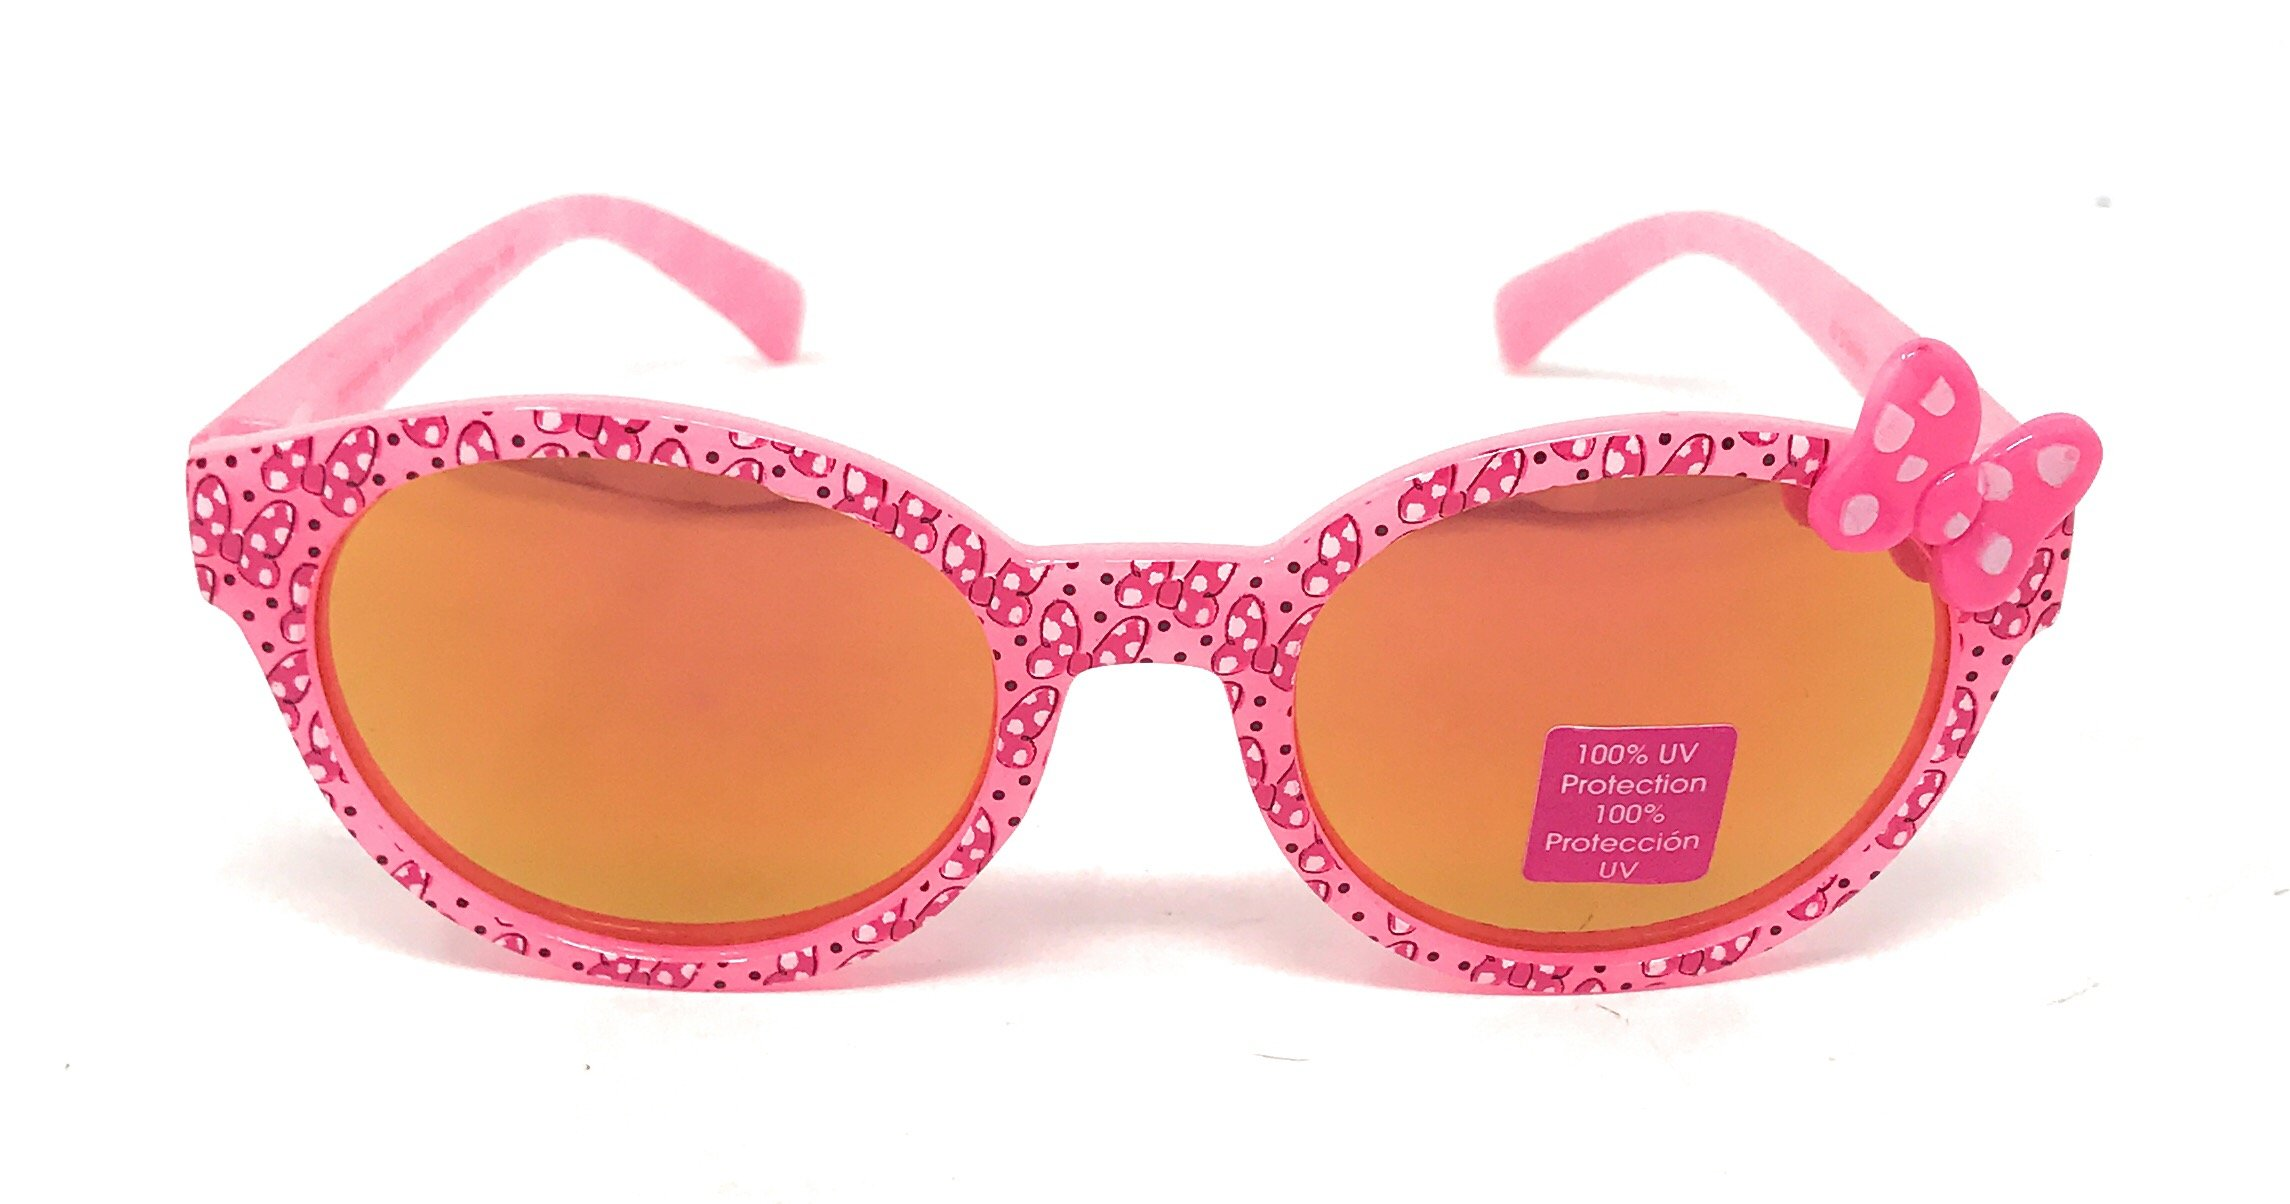 Disney Store  Minnie Mouse Girl's Sunglasses in Pink with Bow - 100% UV Protection